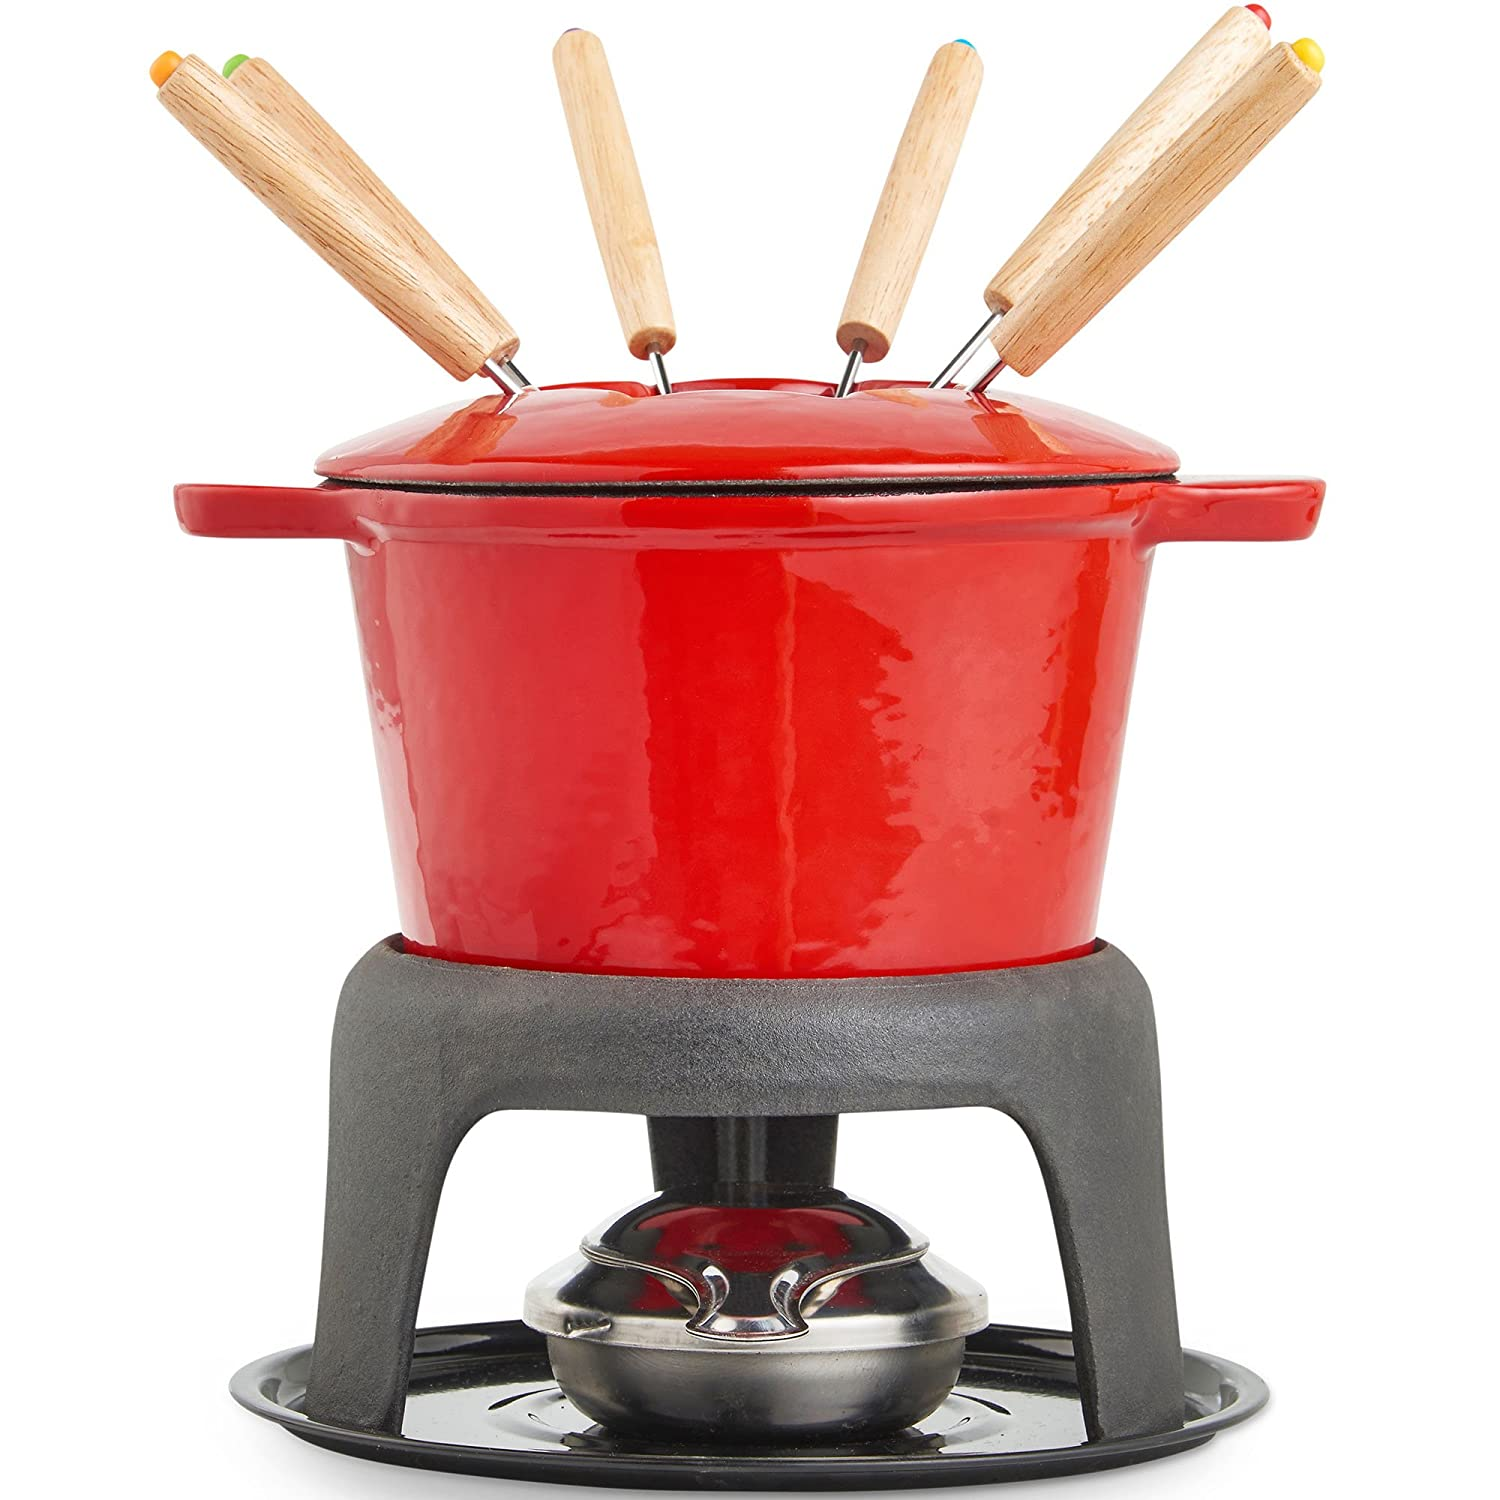 VonShef Fondue Set - Stylish Red Cast Iron Porcelain Enamel - For All Styles of Fondue Such As Cheese And Chocolate 07/093